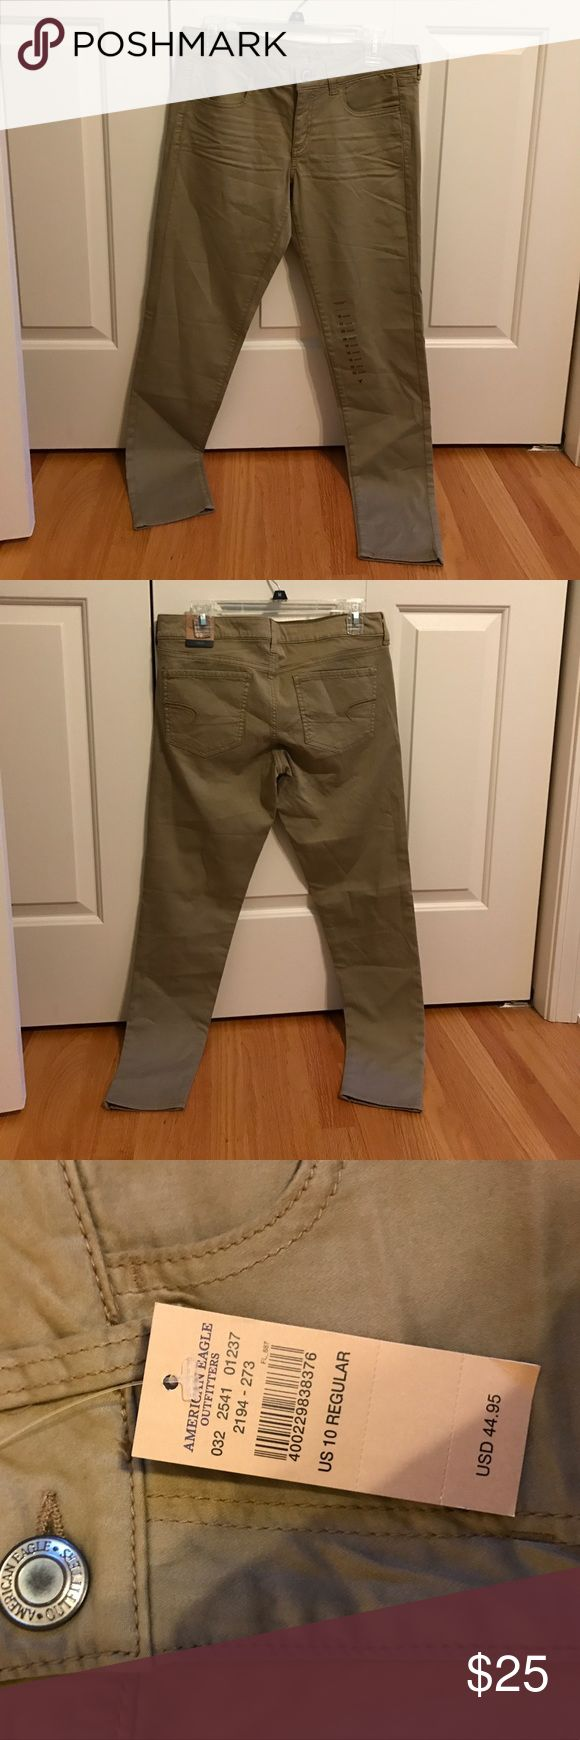 NWT American Eagle khaki jeggings NWT American Eagle khaki jeggings in size 10. These are super cute and can be dressed up for work or dressed down for everyday wear. The material is soft and comfortable. I have these in a different size and absolutely love them! Smoke free home. American Eagle Outfitters Pants Skinny